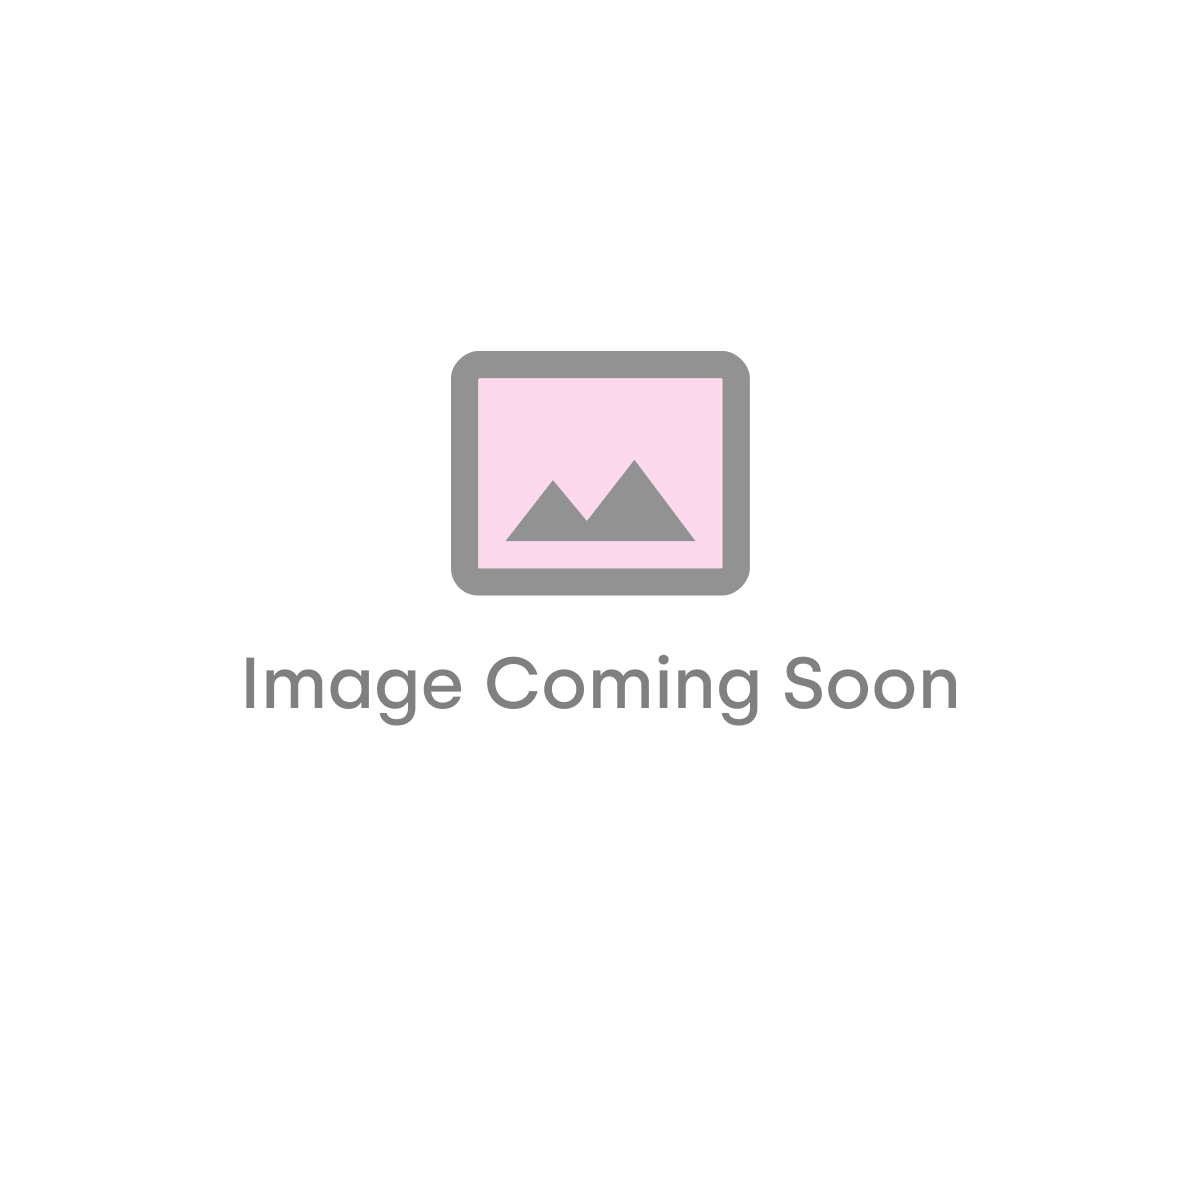 Triton T80z 9.5kW Fast-Fit Electric Shower - White (12283)